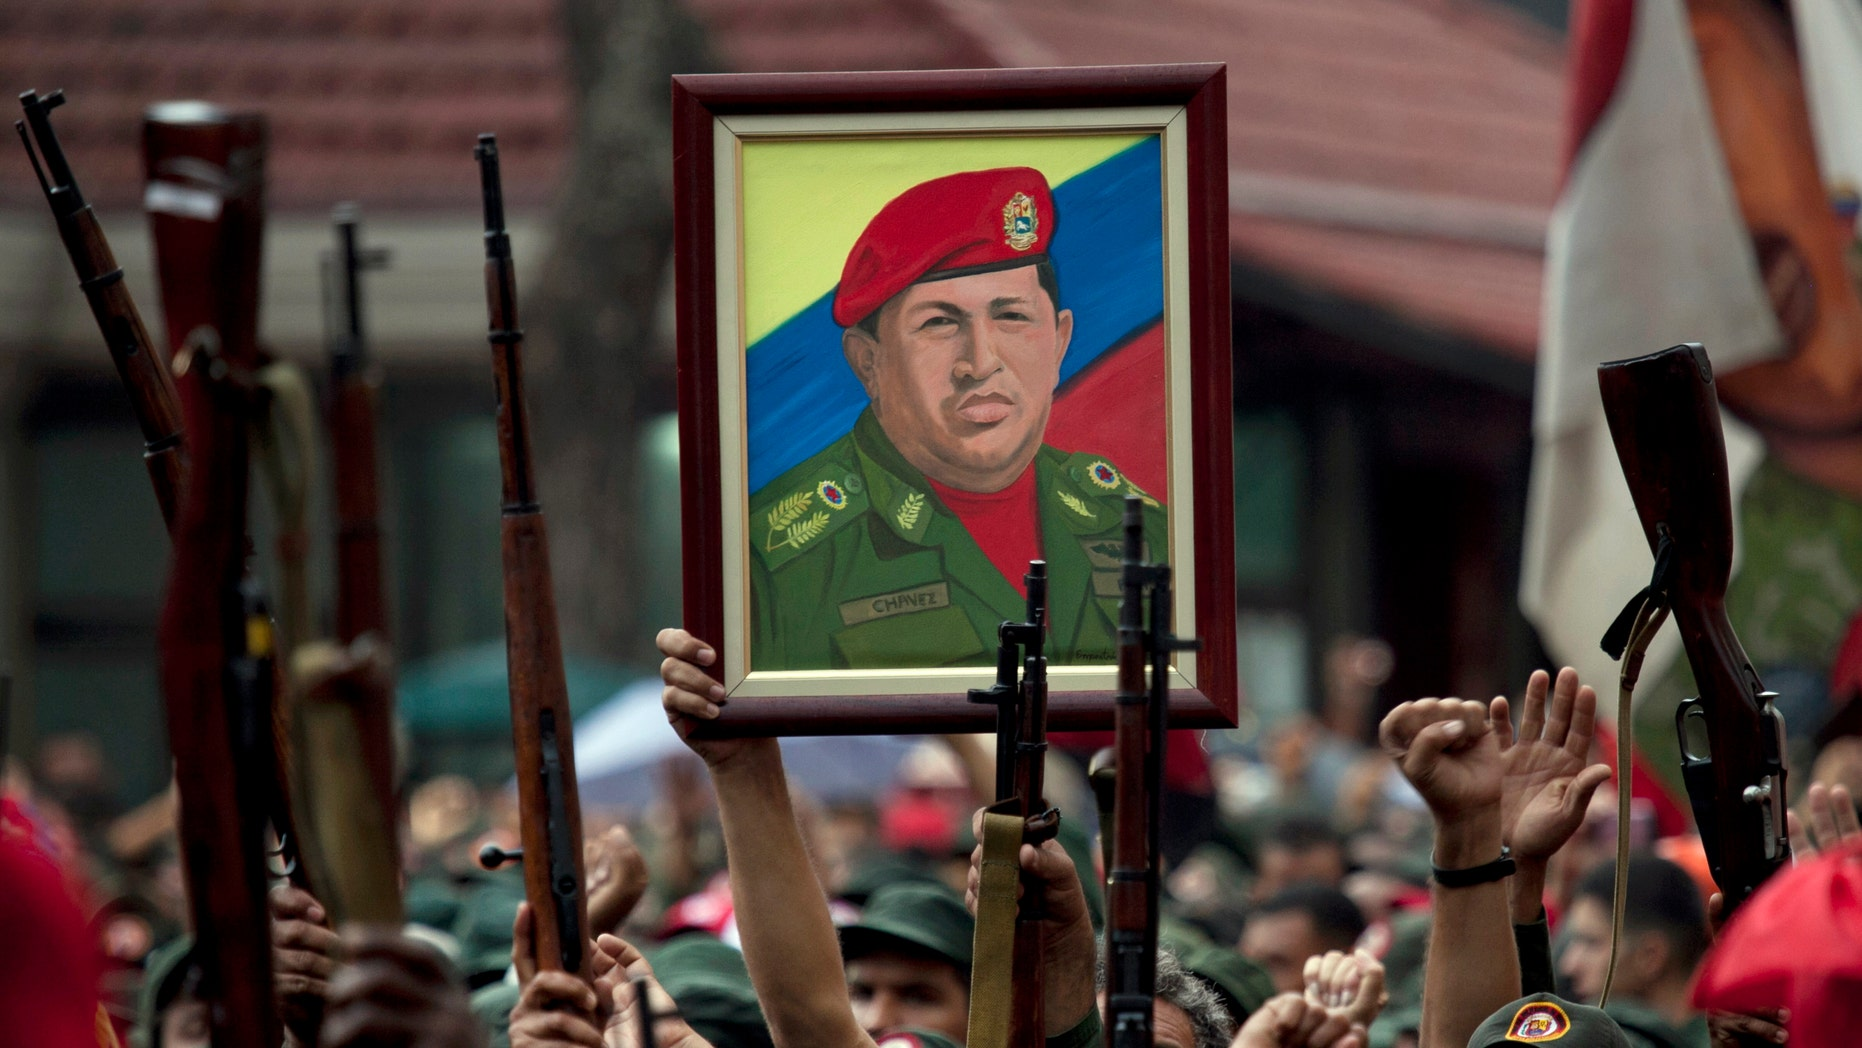 In this April 13, 2010 file photo, members of the National Revolutionary Militia hold up their weapons and a painting of Venezuela's President Hugo Chavez at an event marking the 9th anniversary of Chavez's return to power after a failed 2002 coup, in Caracas, Venezuela. (AP Photo/Ariana Cubillos, File)